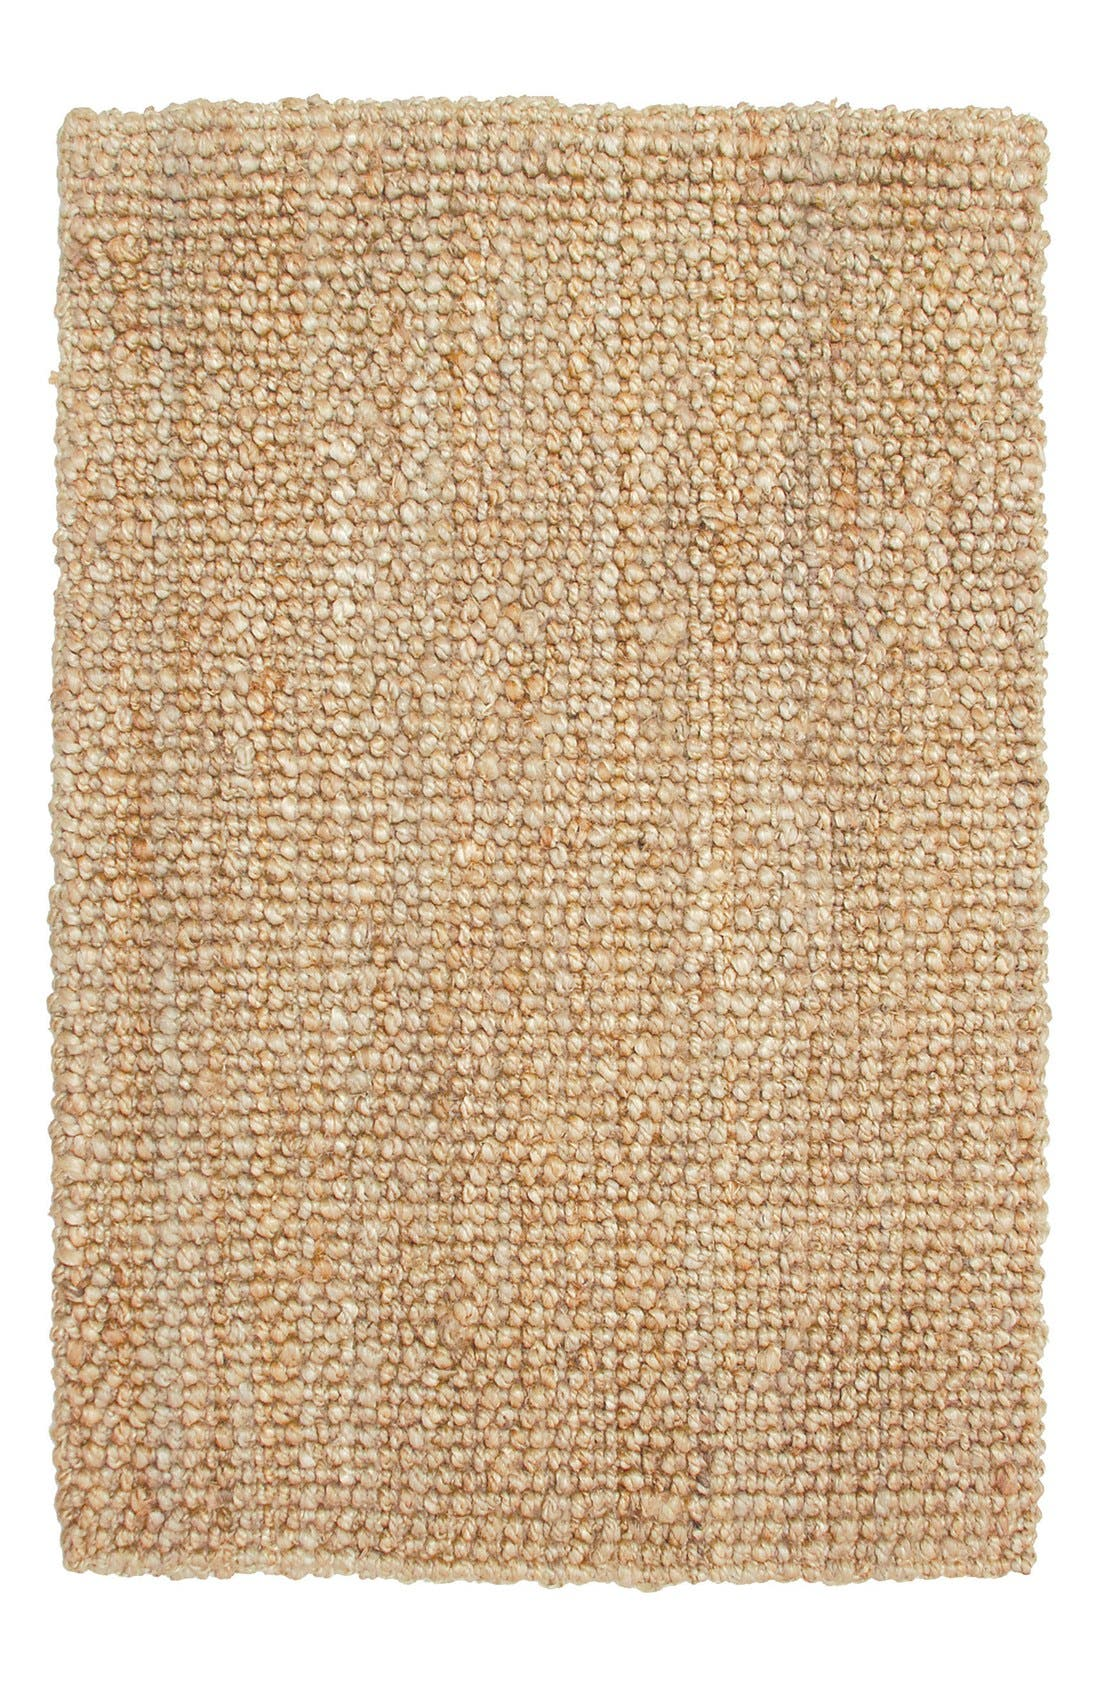 Hand Woven Loop Rug,                         Main,                         color, Natural